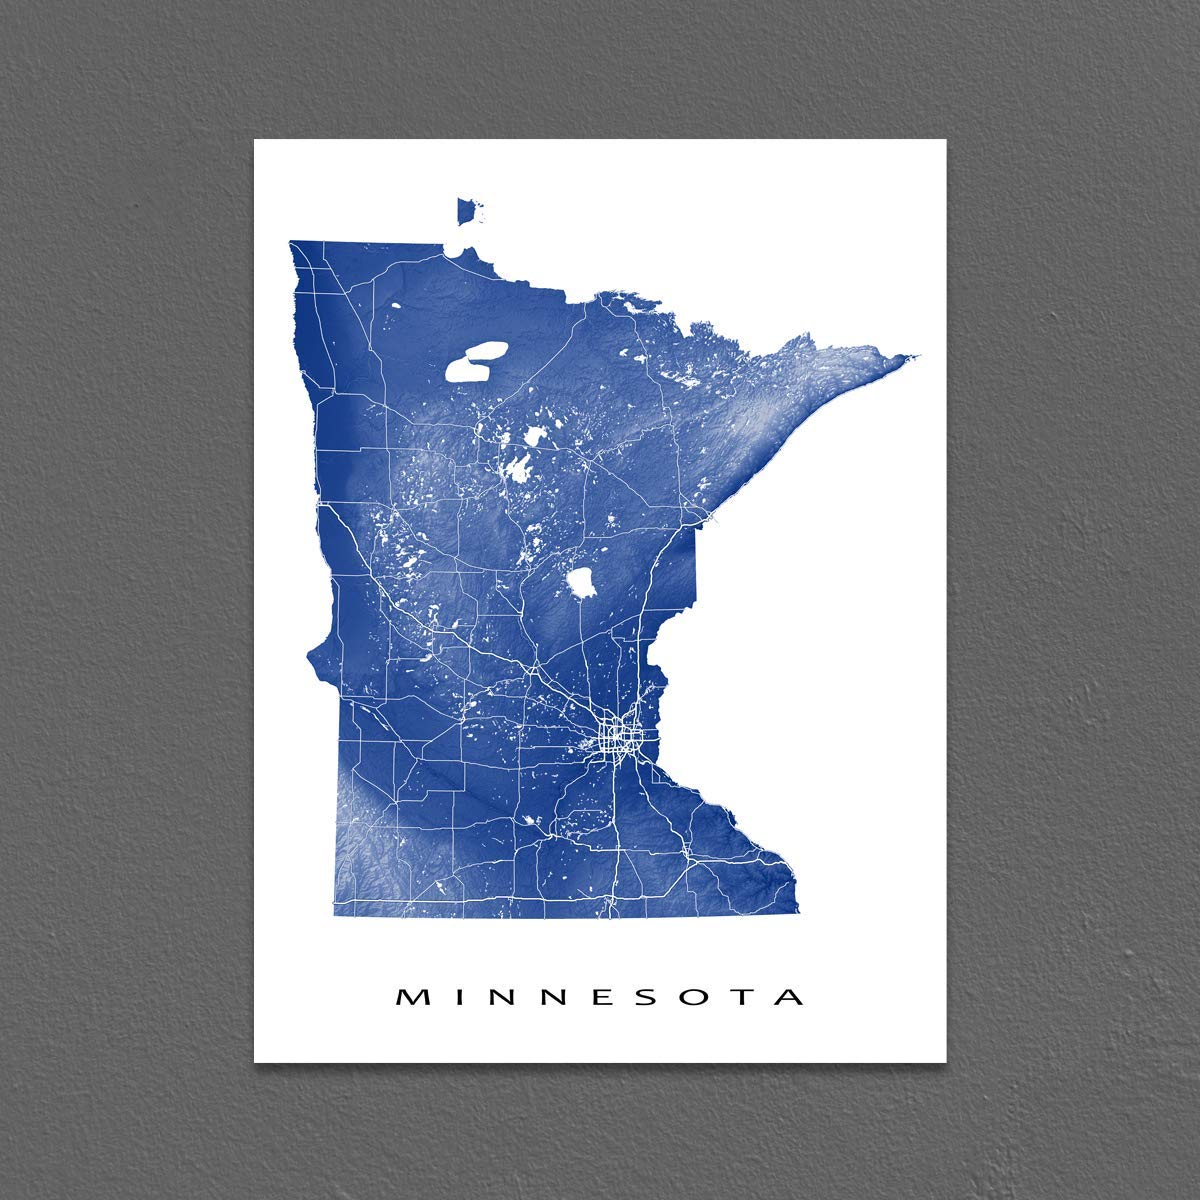 In The Minnesota State Map Of Usa on new mexico map of usa, navy map of usa, alaska map of usa, al map of usa, brown map of usa, grand canyon map of usa, vermont map of usa, northeastern map of usa, massachusetts on map of usa, cincinnati map of usa, pittsburgh map of usa, dartmouth map of usa,